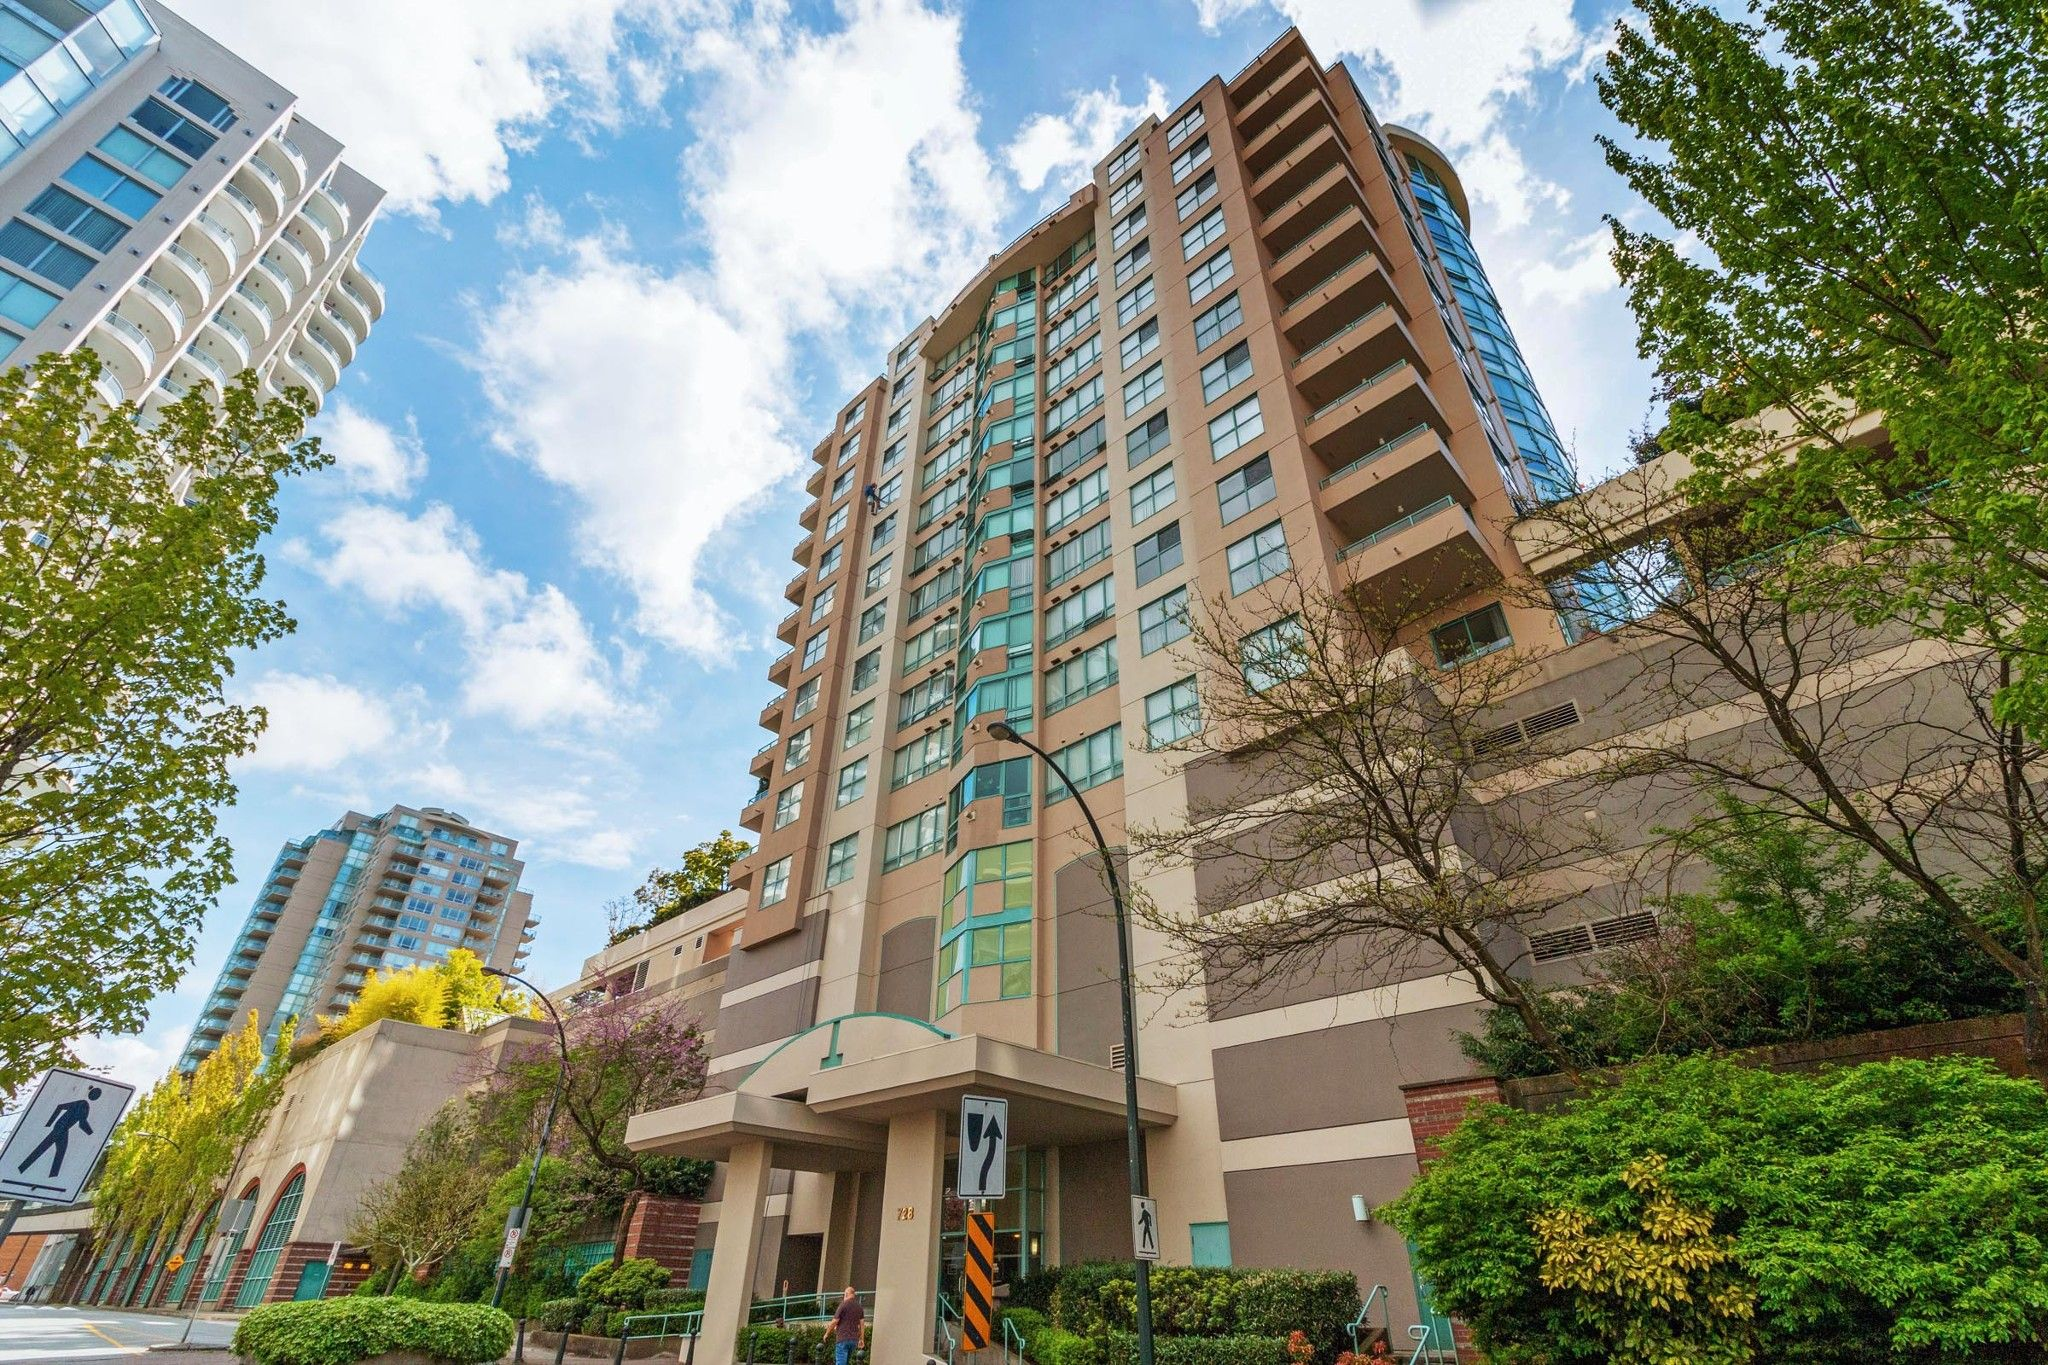 """Main Photo: 905 728 PRINCESS Street in New Westminster: Uptown NW Condo for sale in """"PRINCESS TOWER"""" : MLS®# R2578505"""